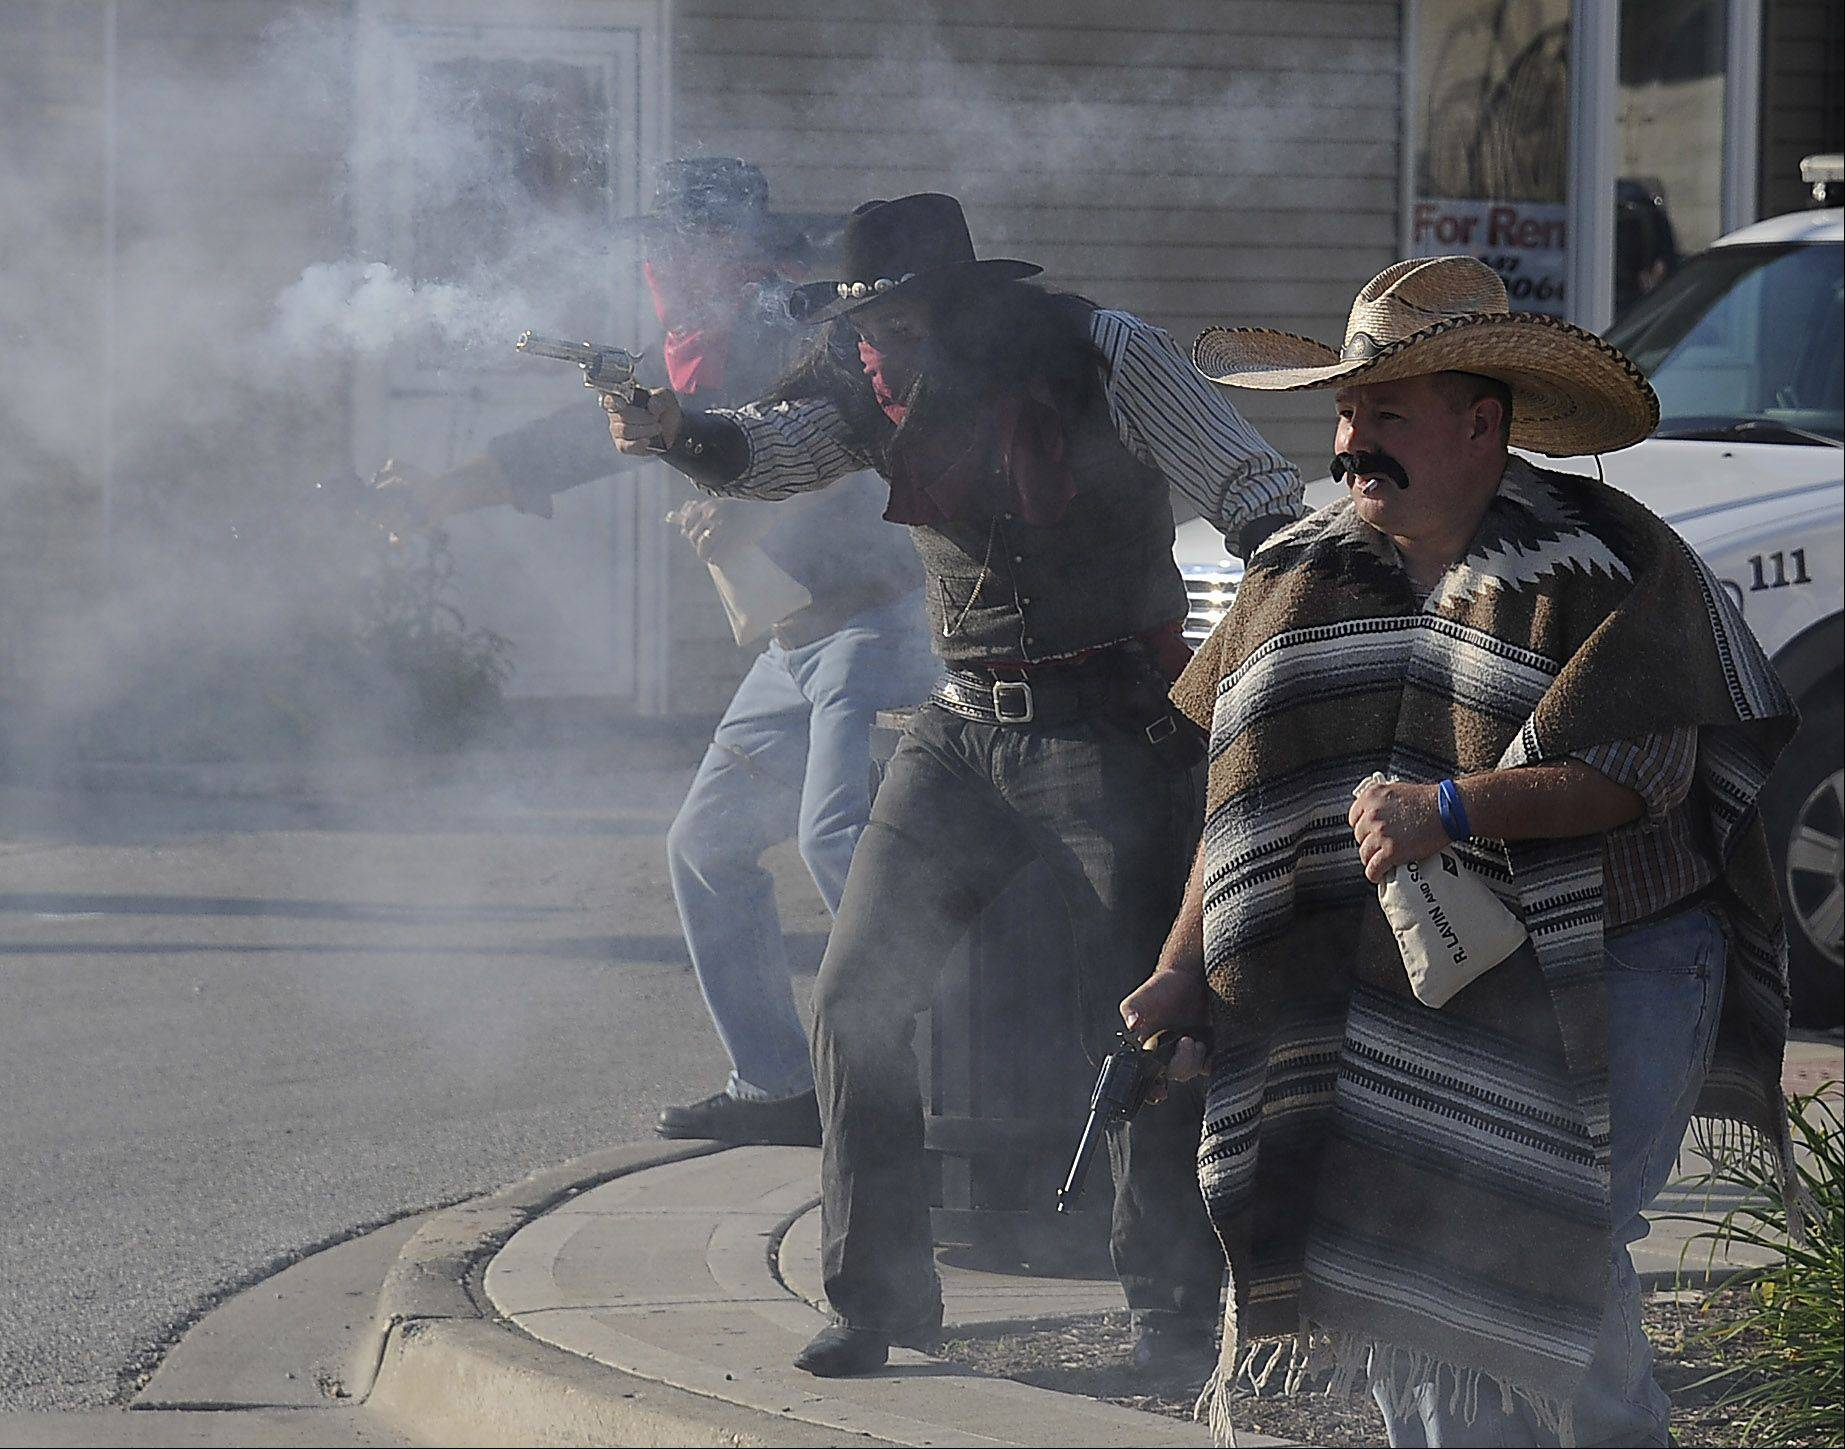 """Bad guys"" Shawn Sponenburg of Lake Geneva, Wis., and John Alvarez of Crystal Lake shoot it out with the law Thursday evening on Main Street to promote the Wauconda rodeo this weekend."